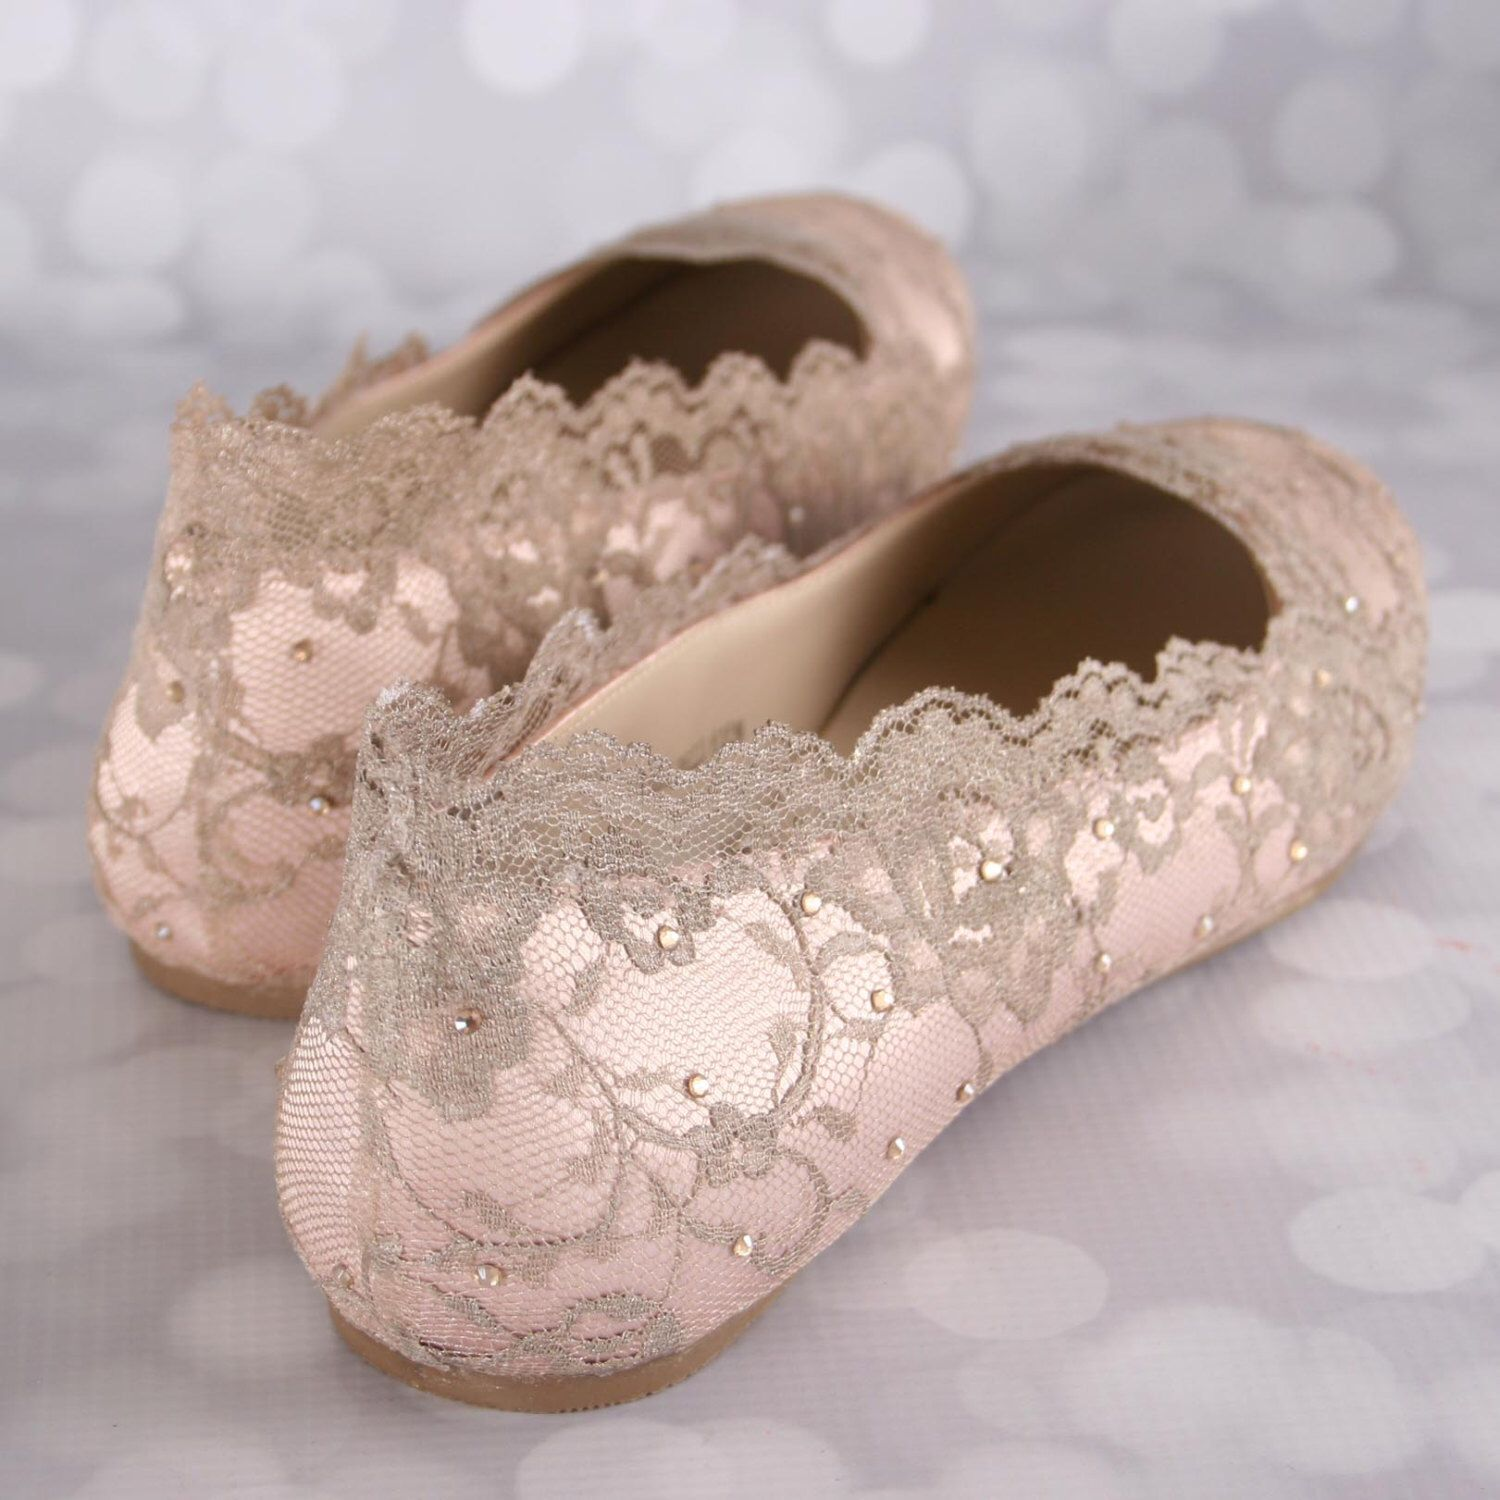 Wedding Shoes, Blush Wedding Shoes, Wedding Shoe Flats, Gold Lace Wedding,  Bling Wedding Shoes, Blush Wedding Ideas, Bridal Lace Shoes By ...